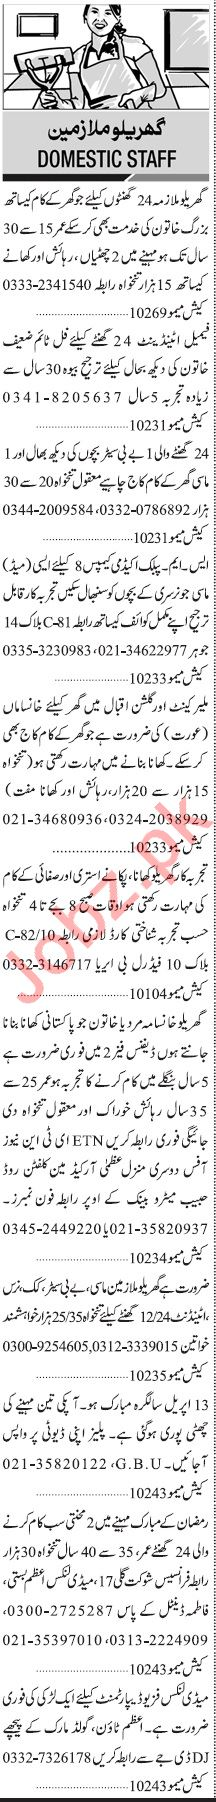 Jang Sunday Classified Ads 18 April 2021 for House Staff